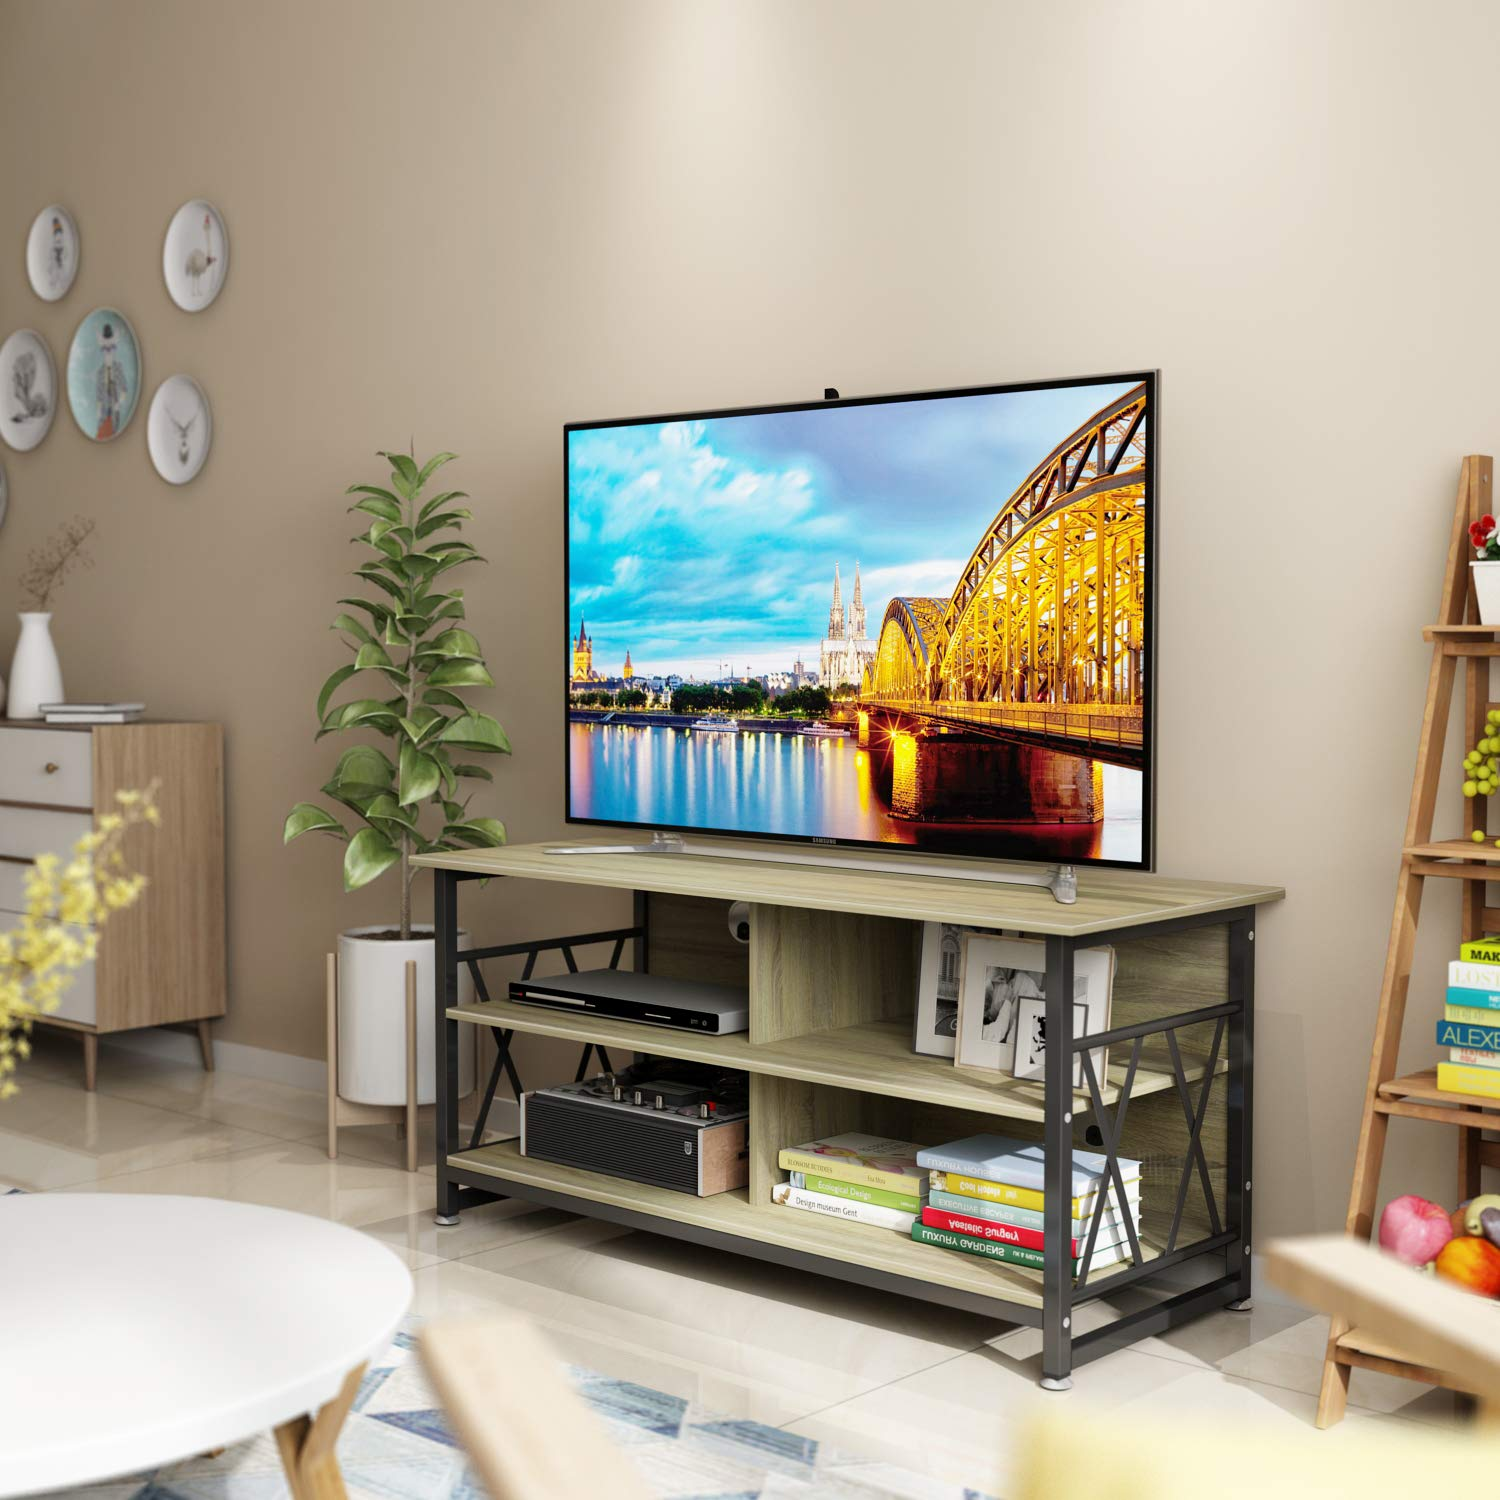 TV Stand DEWEL 47 TV Console Mid-Century Modern Entertainment Center with Storage Media Stand Home Living Room Furniture with 4 Open Storage Shelves